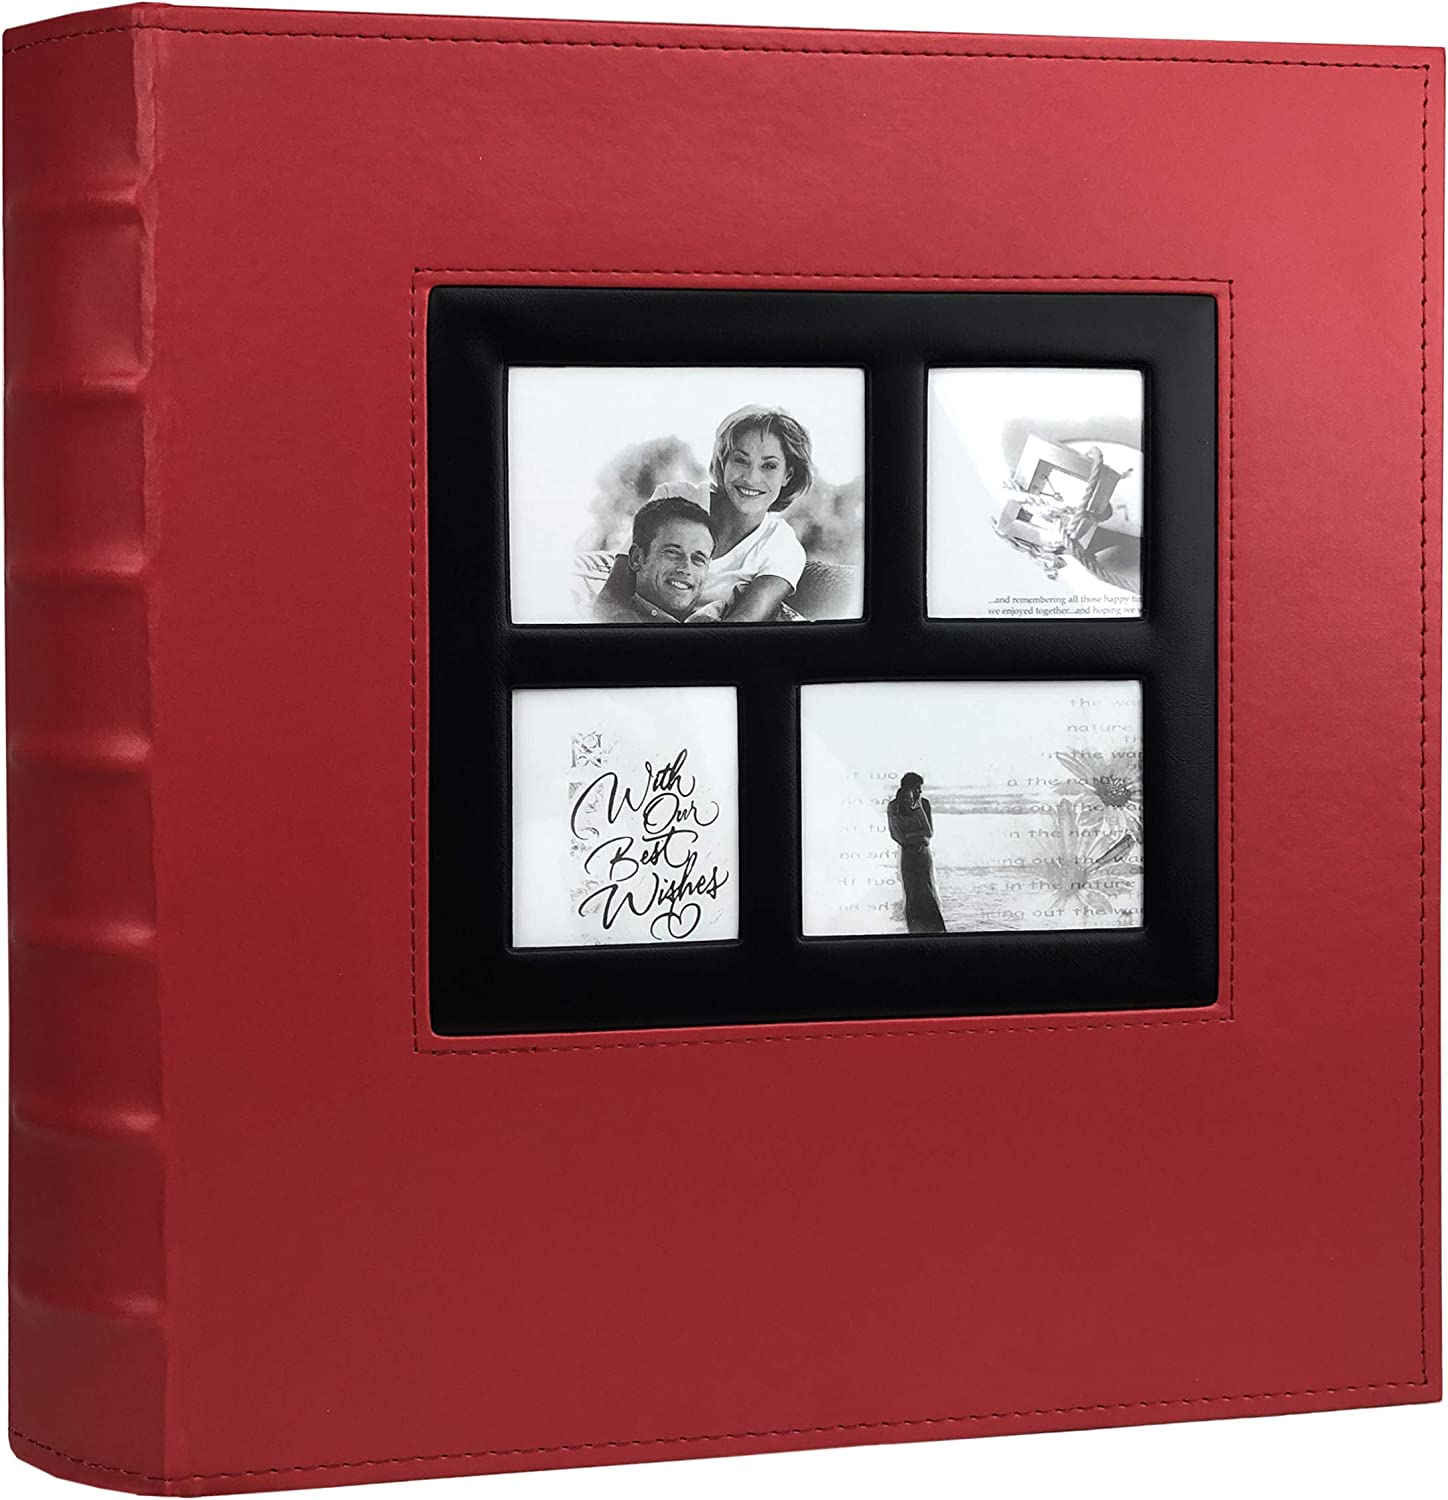 RECUTMS Photo Album 4x6 Holds 500 Photos Black Pages Large Capacity Leather Cover Wedding Family Baby Photo Albums Book Horizontal and Vertical Photos (Red)